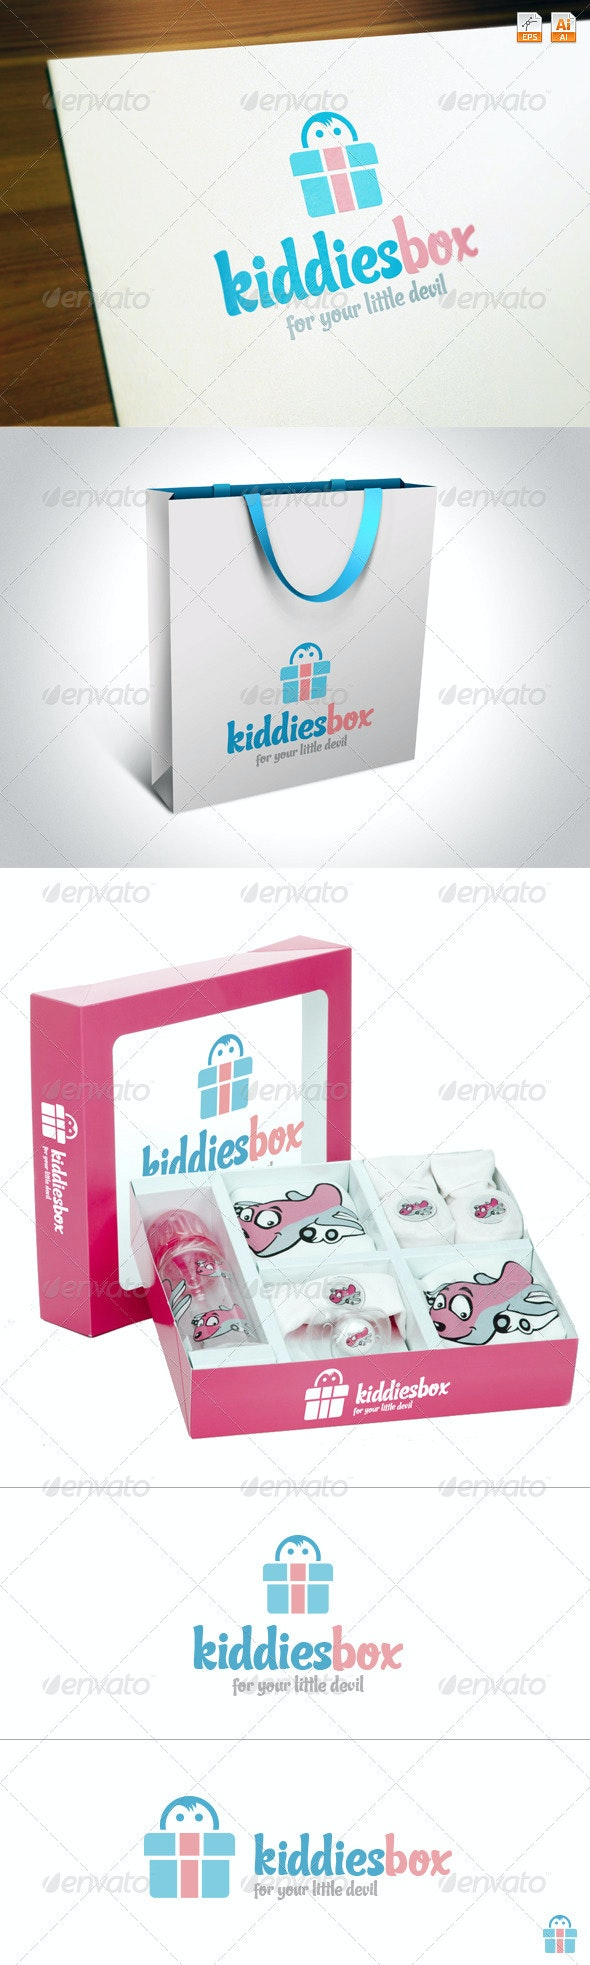 KiddiesBox - Humans Logo Templates